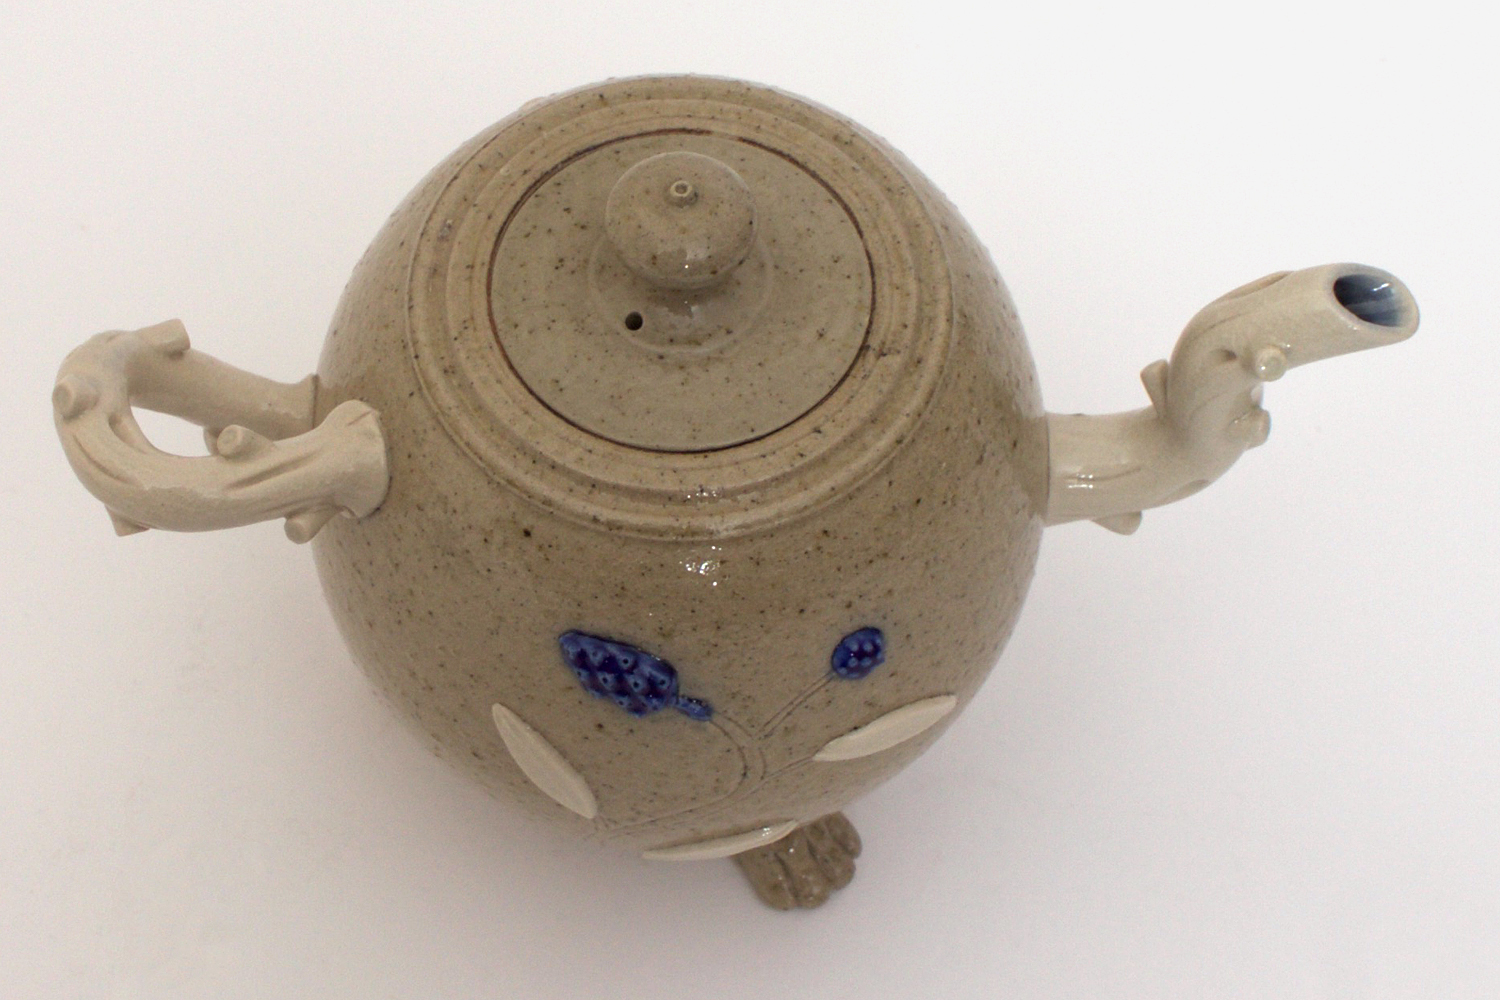 Peter Meanley Ceramic Tea Pot 026